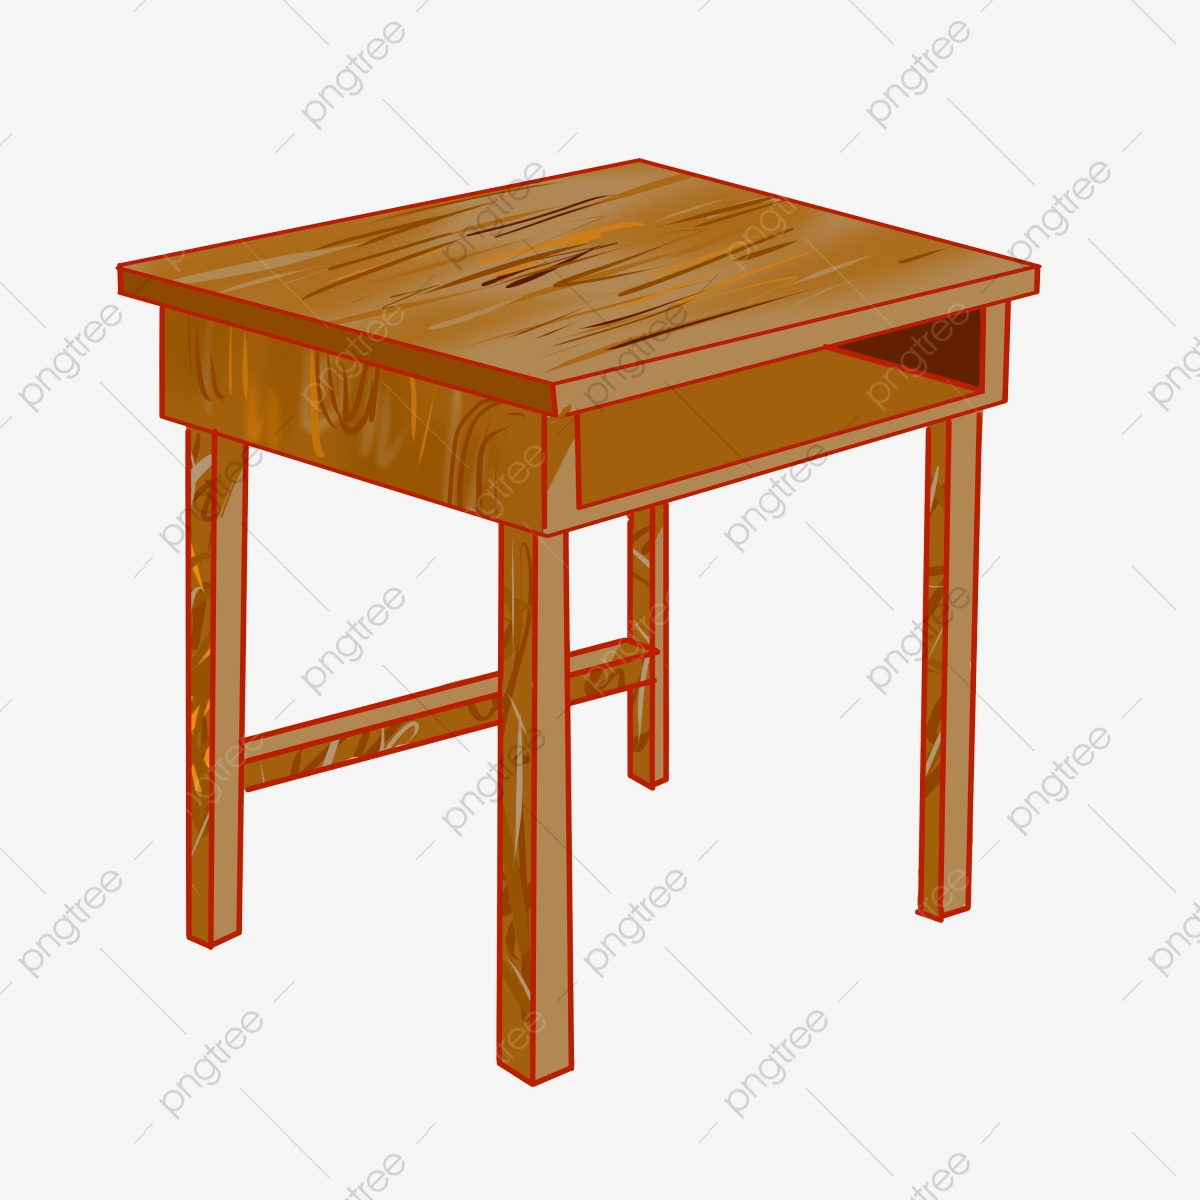 Small Table Png 9